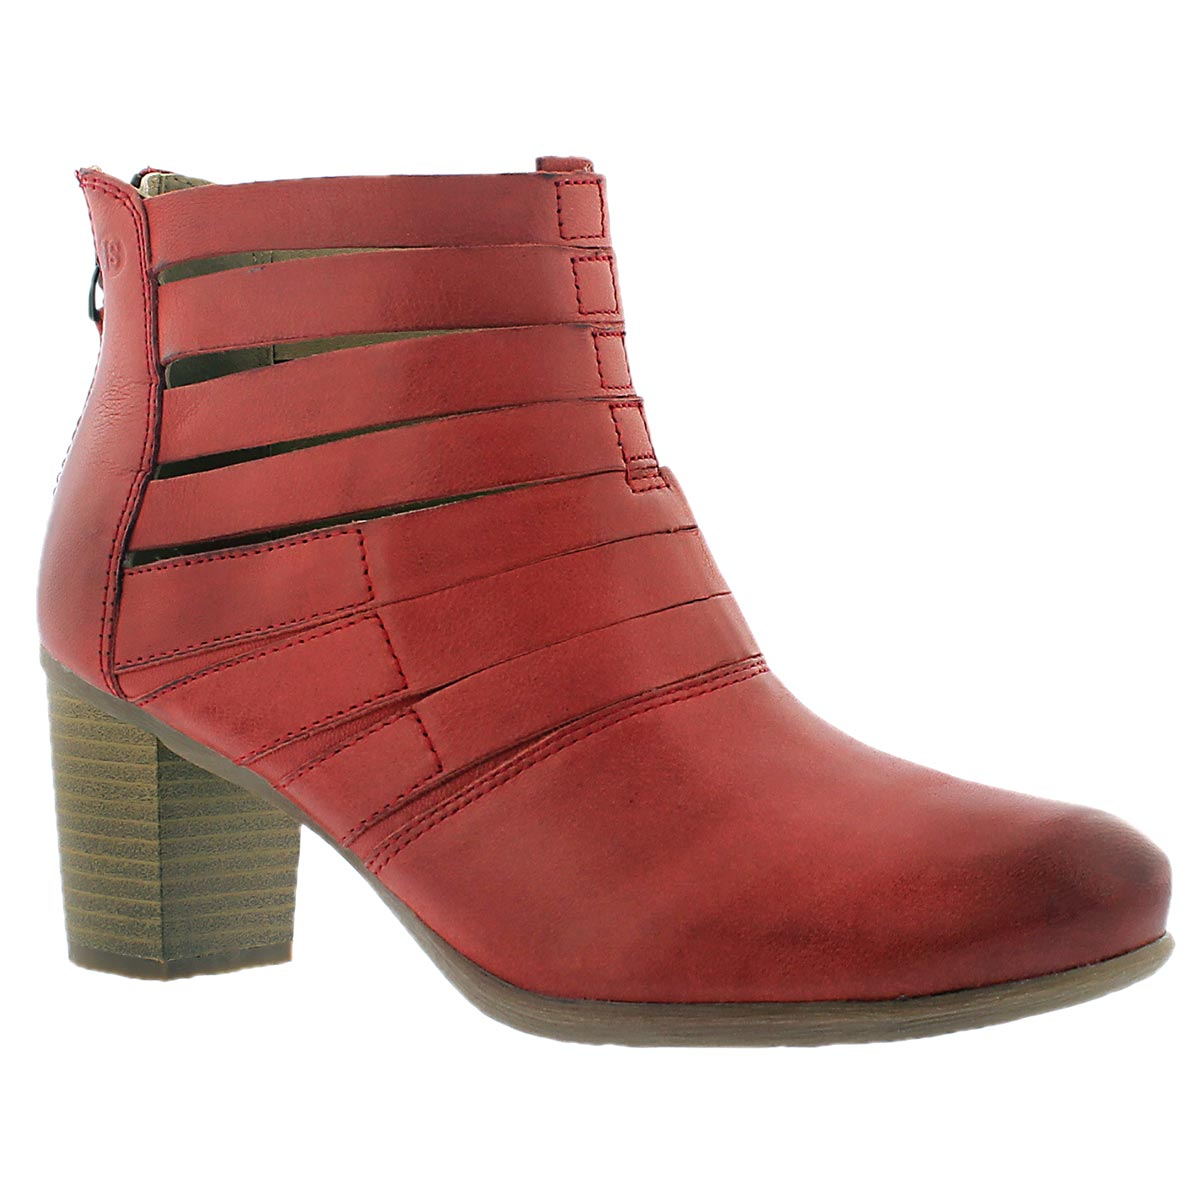 Lds Bonnie 01 red ankle boot